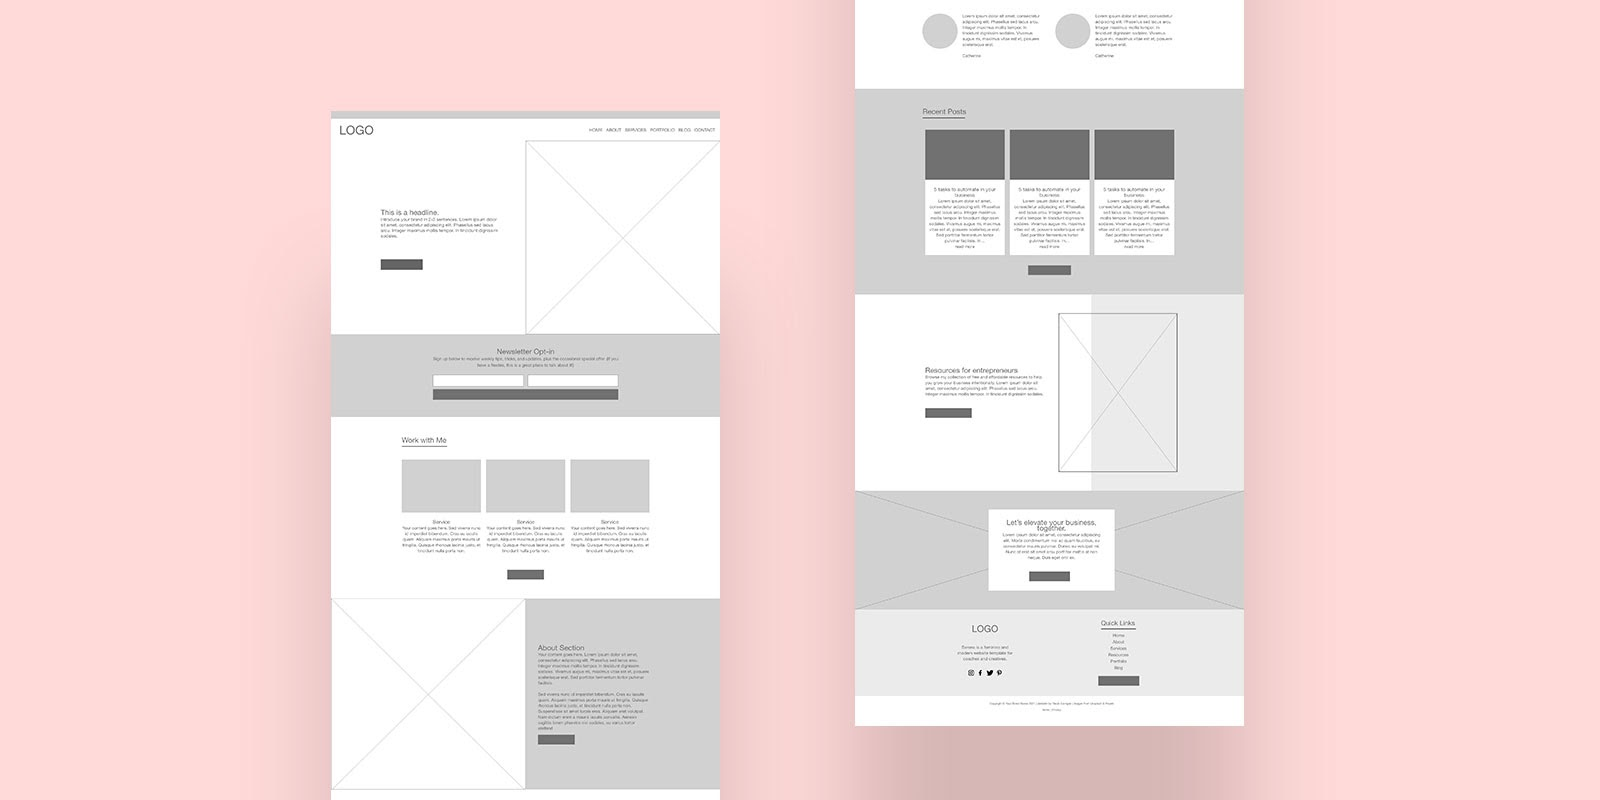 Example of a digital wireframe created with Adobe XD